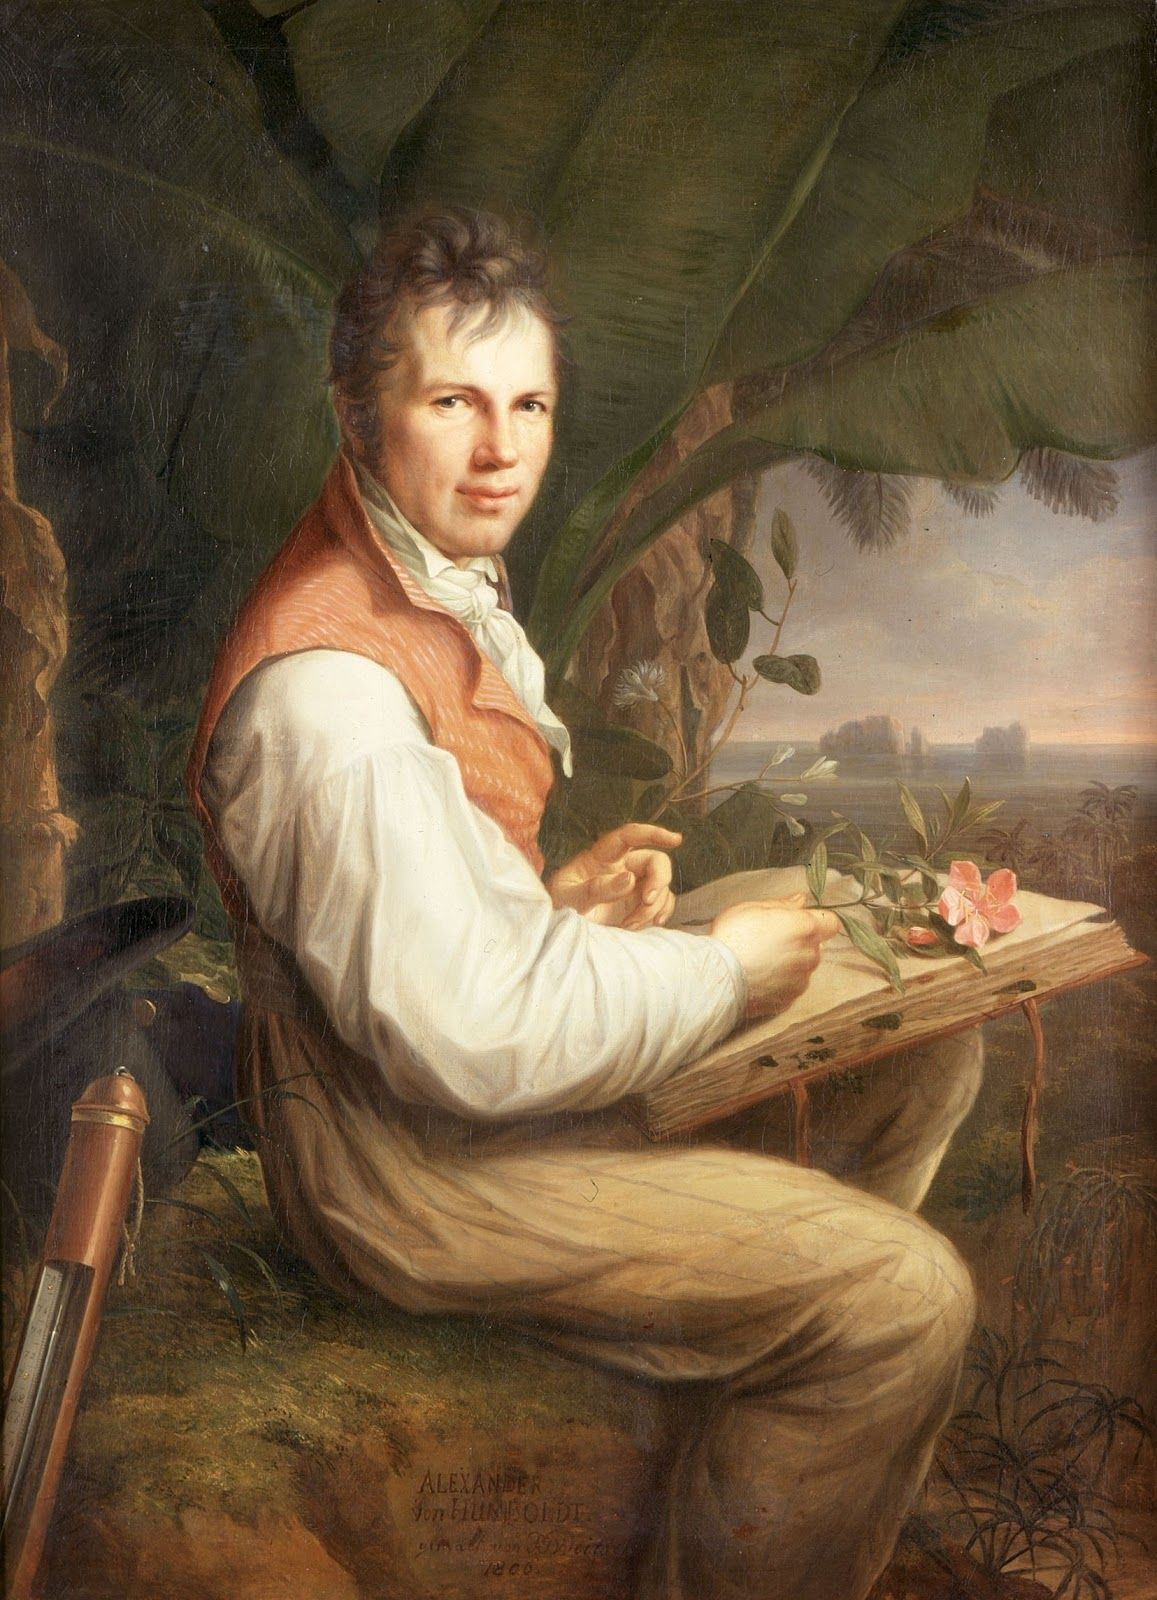 On this day in 1804 geographer, naturalist, and explorer Alexander von Humboldt returned home from his great South America scientific discovery journey.